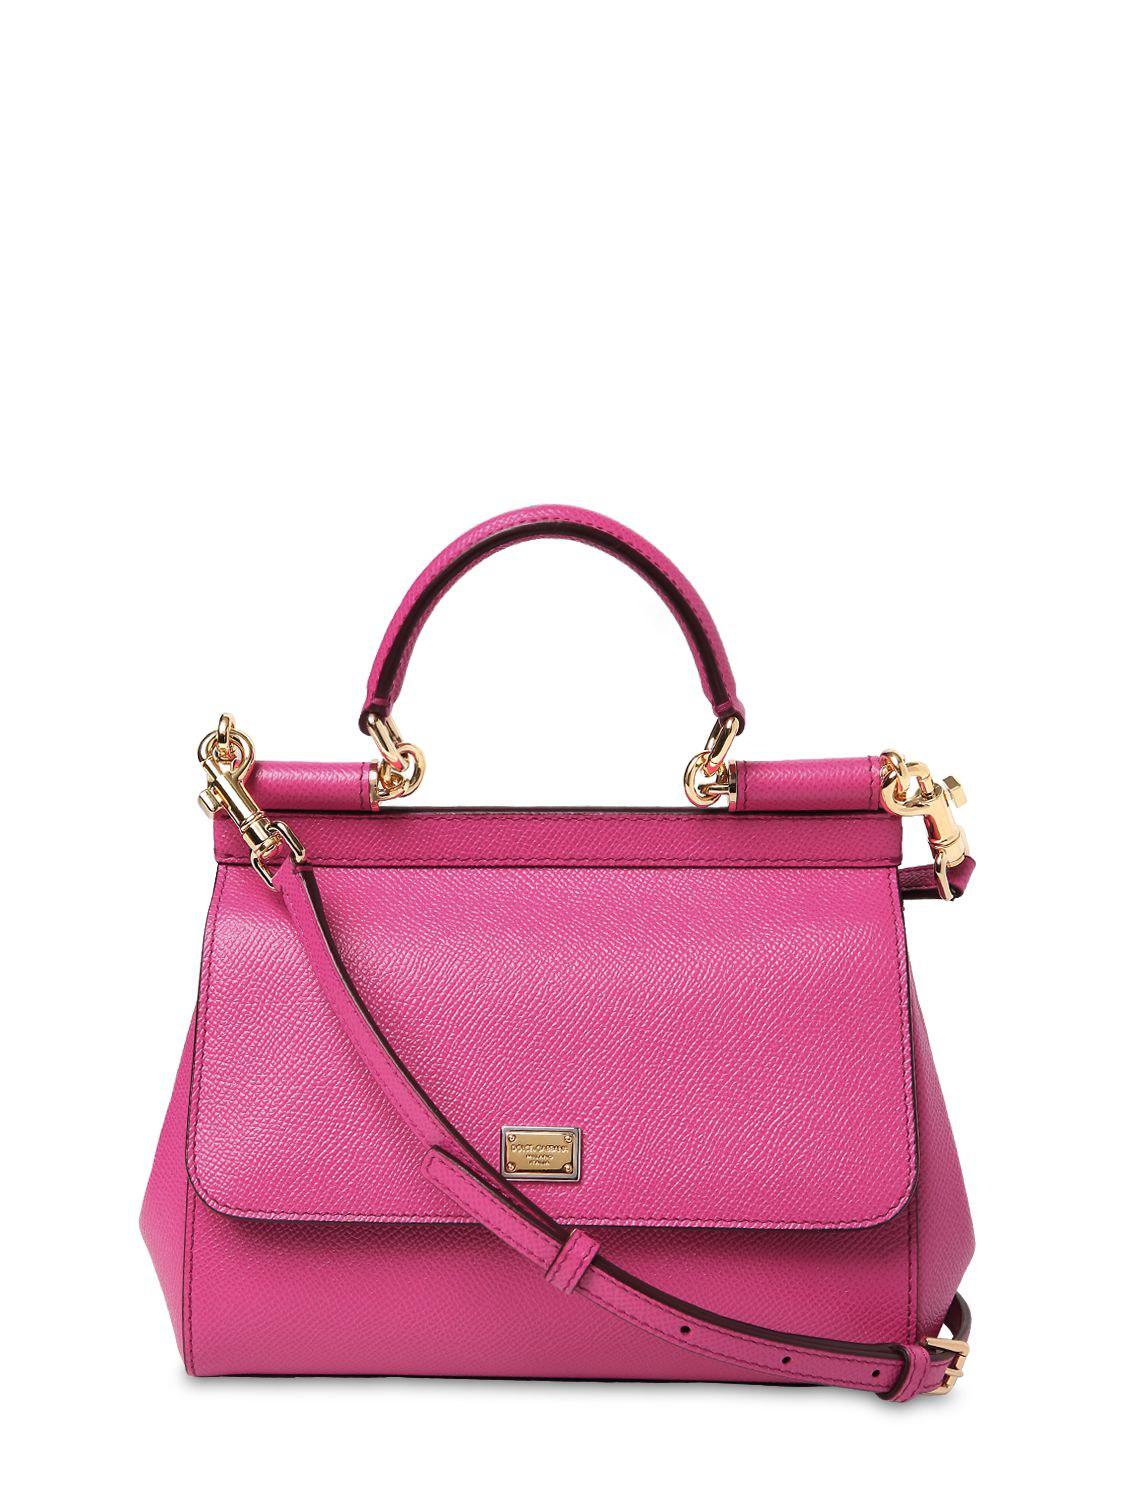 1ce66aefe4 Dolce   Gabbana Small Sicily Dauphine Leather Bag in Pink - Lyst